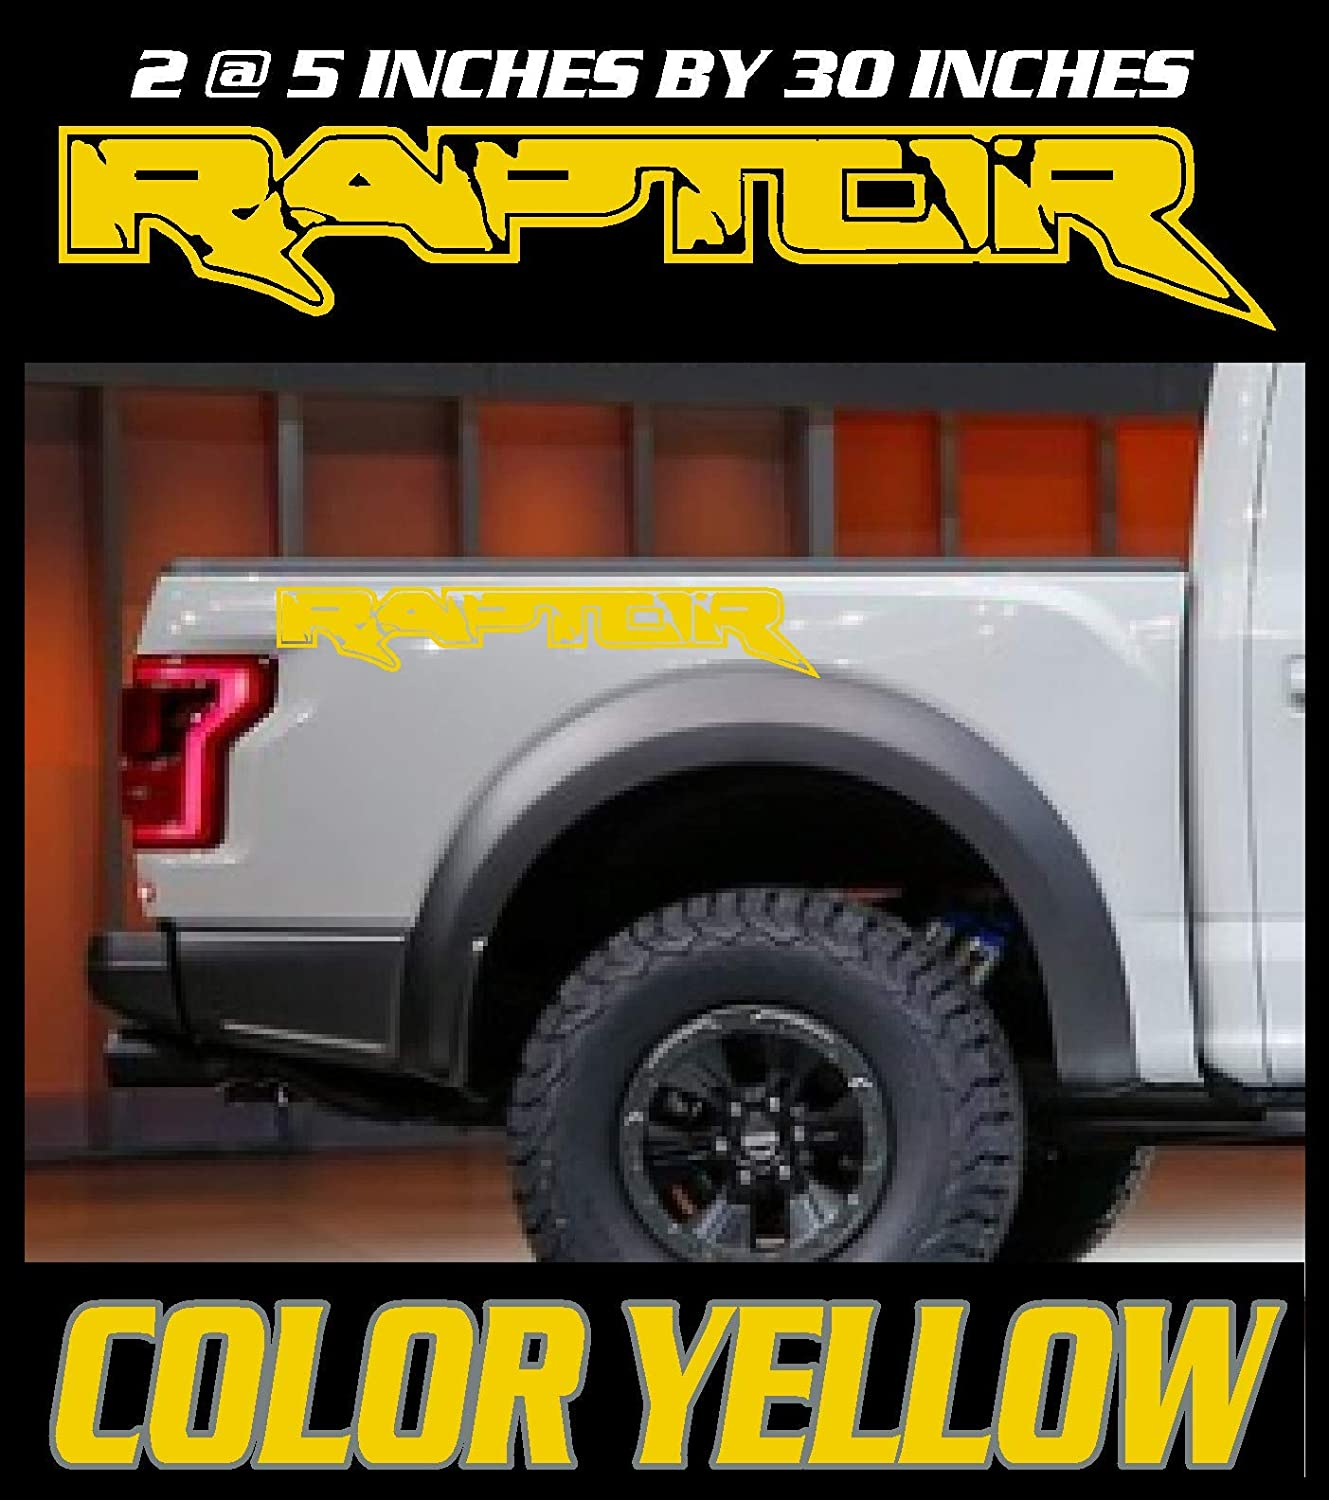 6 to 8 Year Outdoor Life Set of Two 5 inch by 30 inch Color Yellow Ford Raptor Decal Graphic Truck Bed Side Sticker